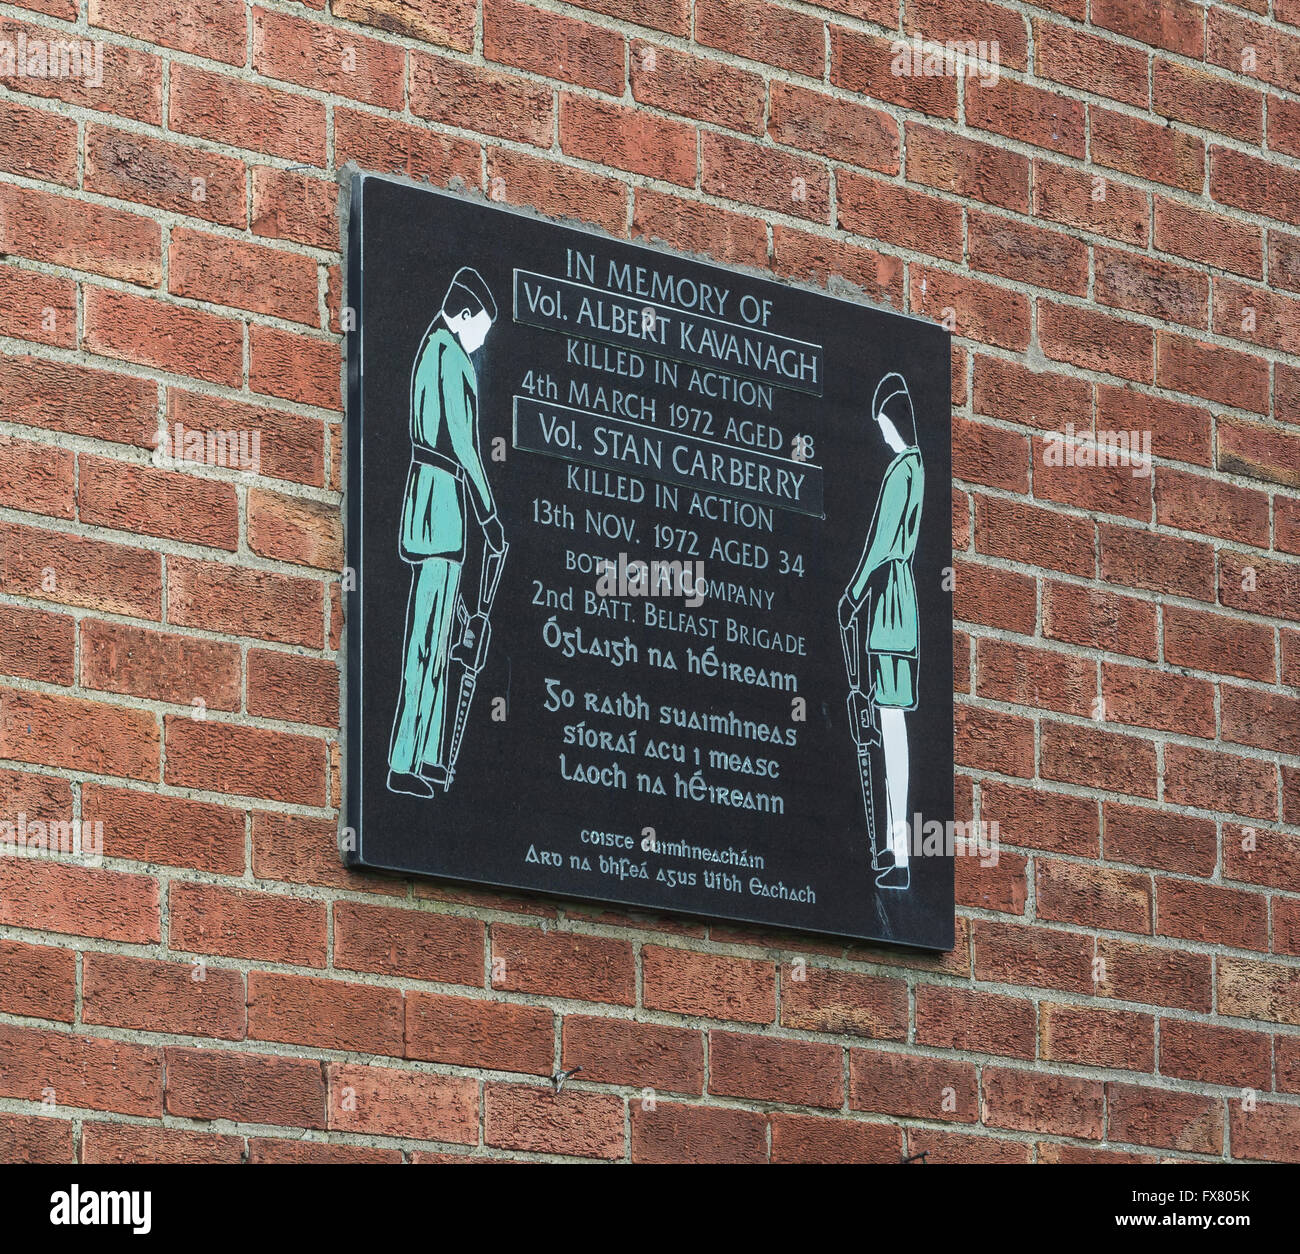 Memorial plaque for Albert Kavanagh and Stan Carberry IRA members from Belfast, plaque is found on Falls Road. Stock Photo